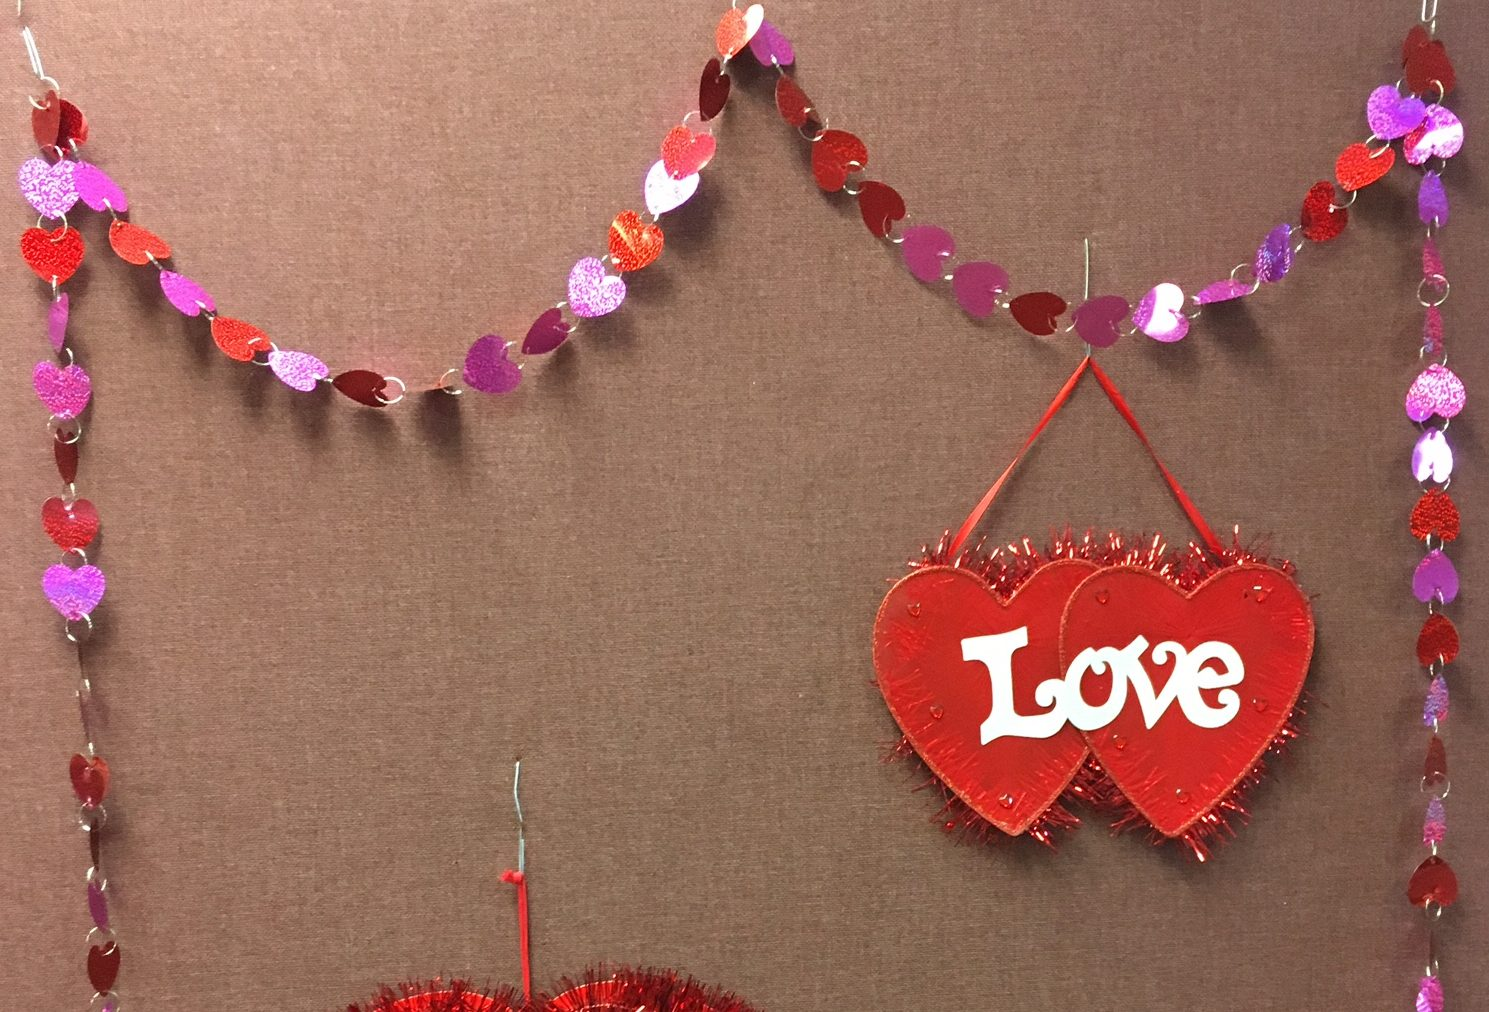 Decorations in City Clerk's office